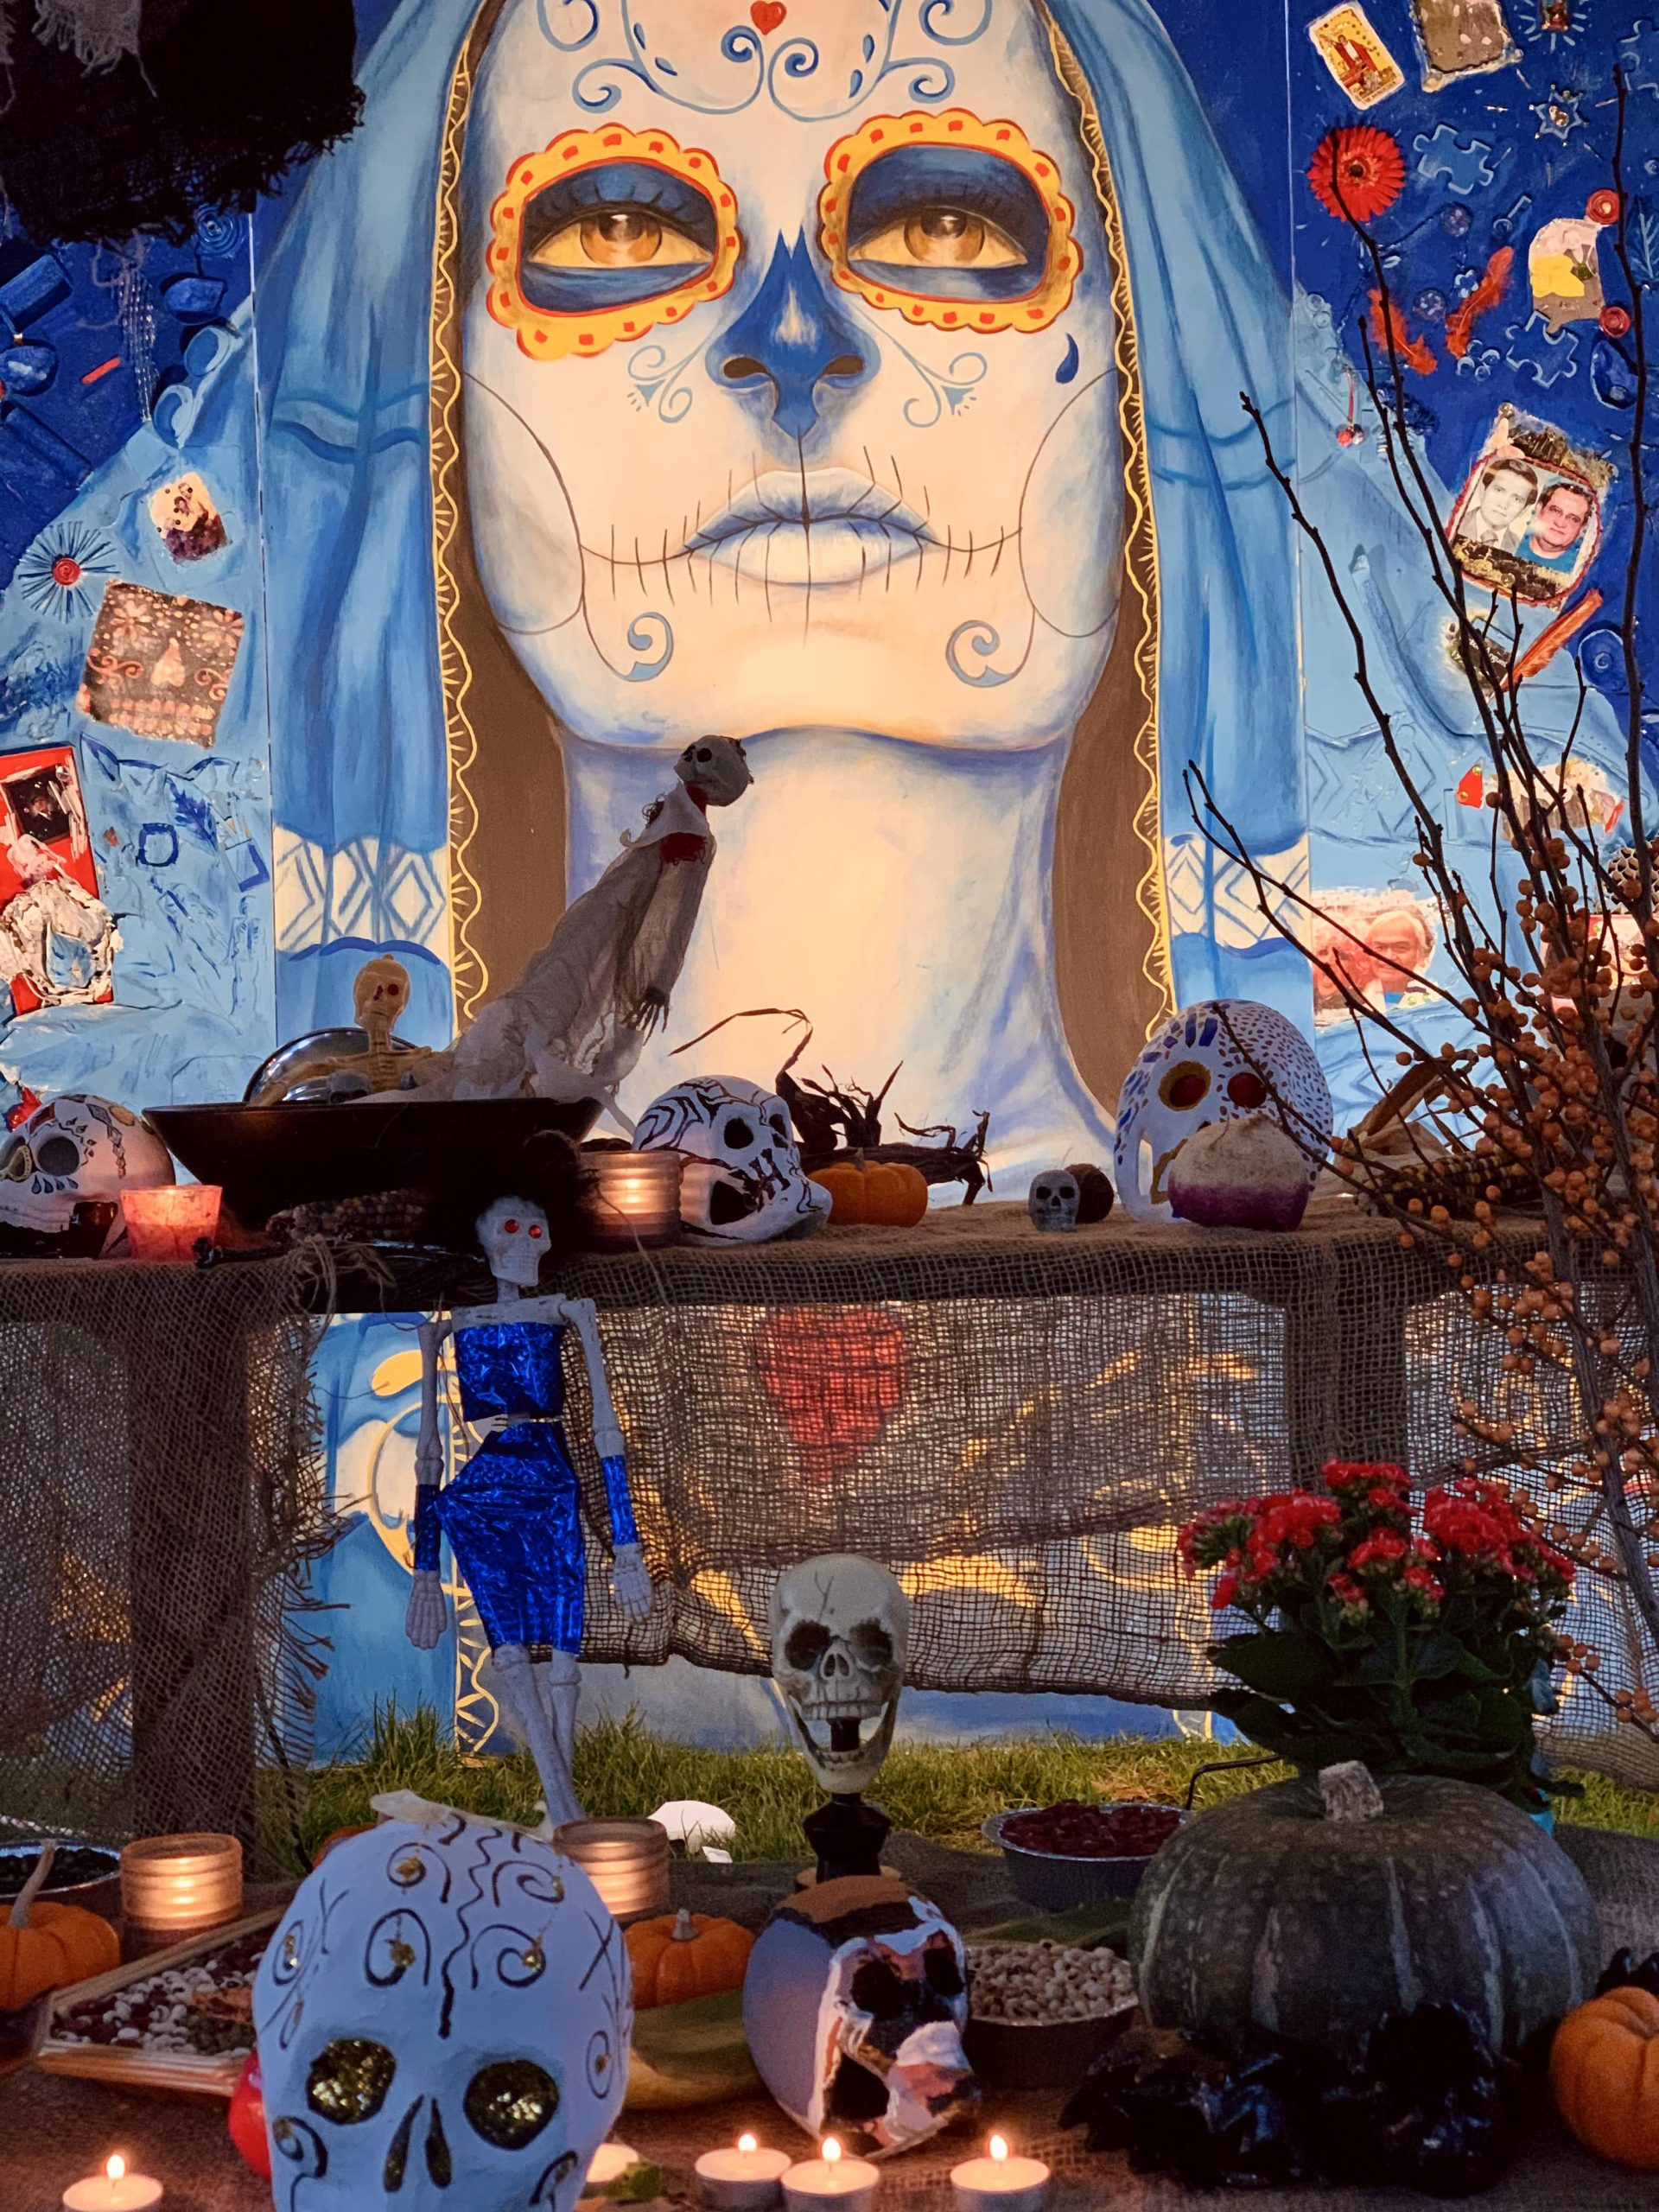 A shrine celebrating Day of the Dead at Emery Barnes Park in Yaletown Vancouver